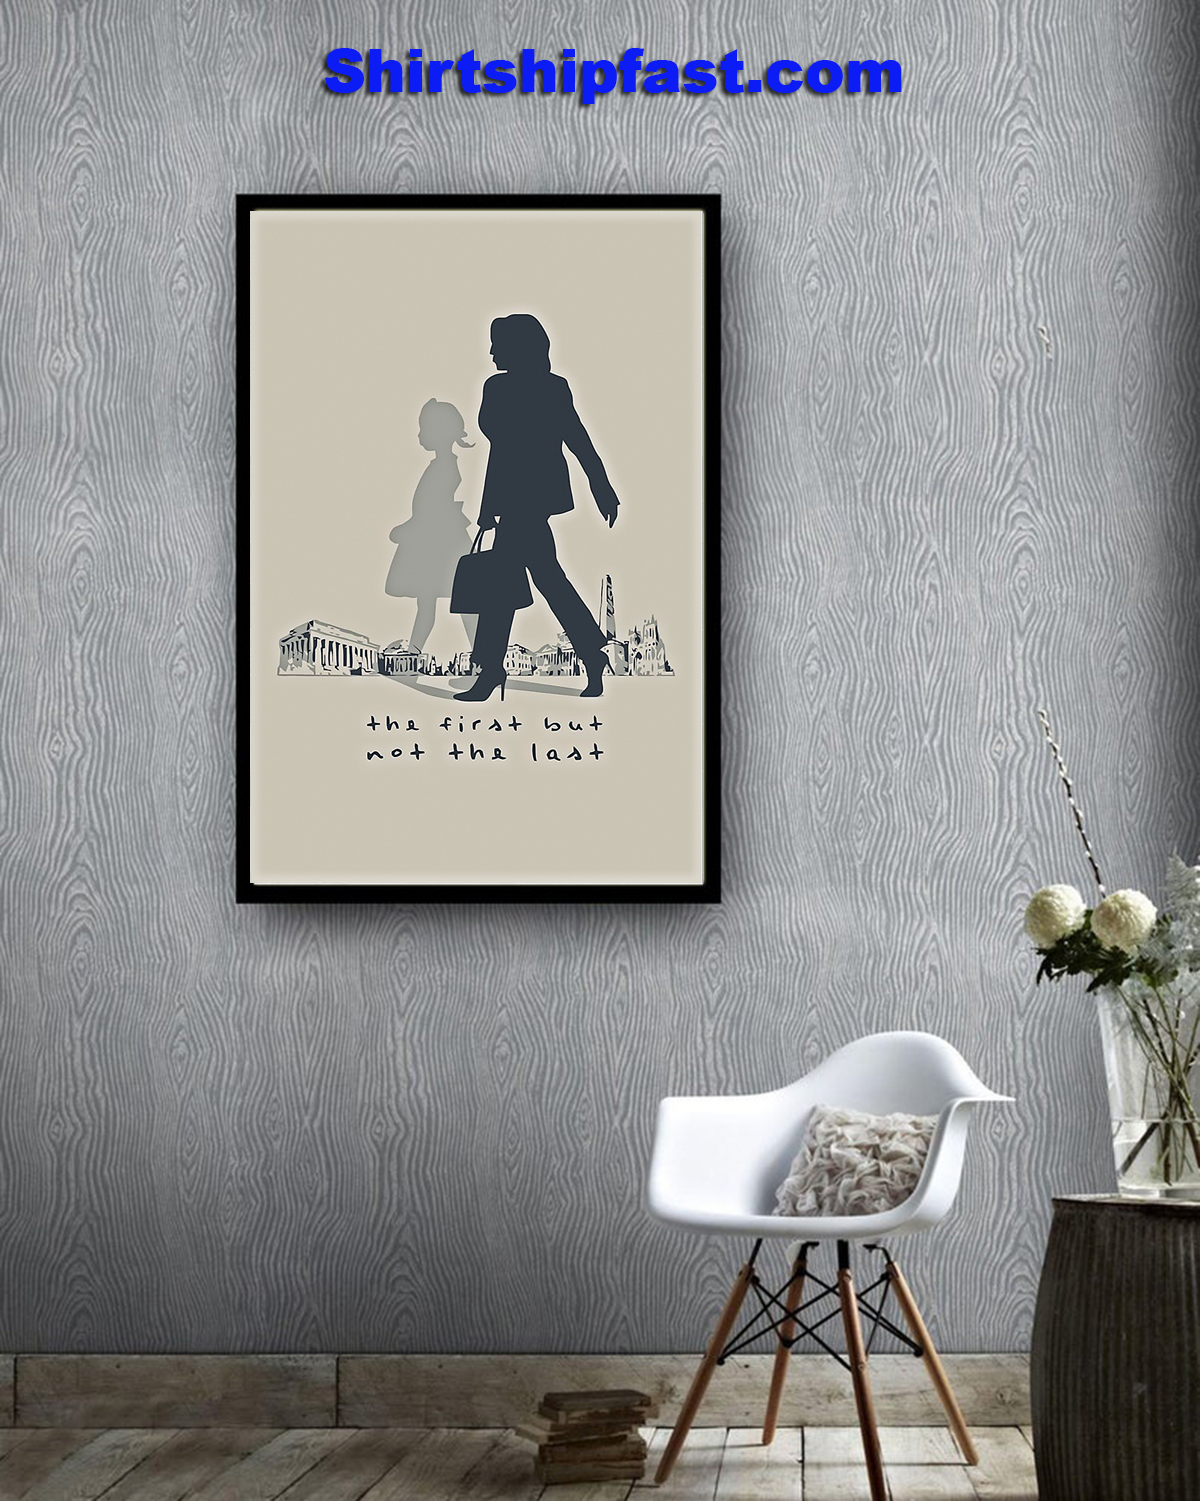 The first but not the last poster